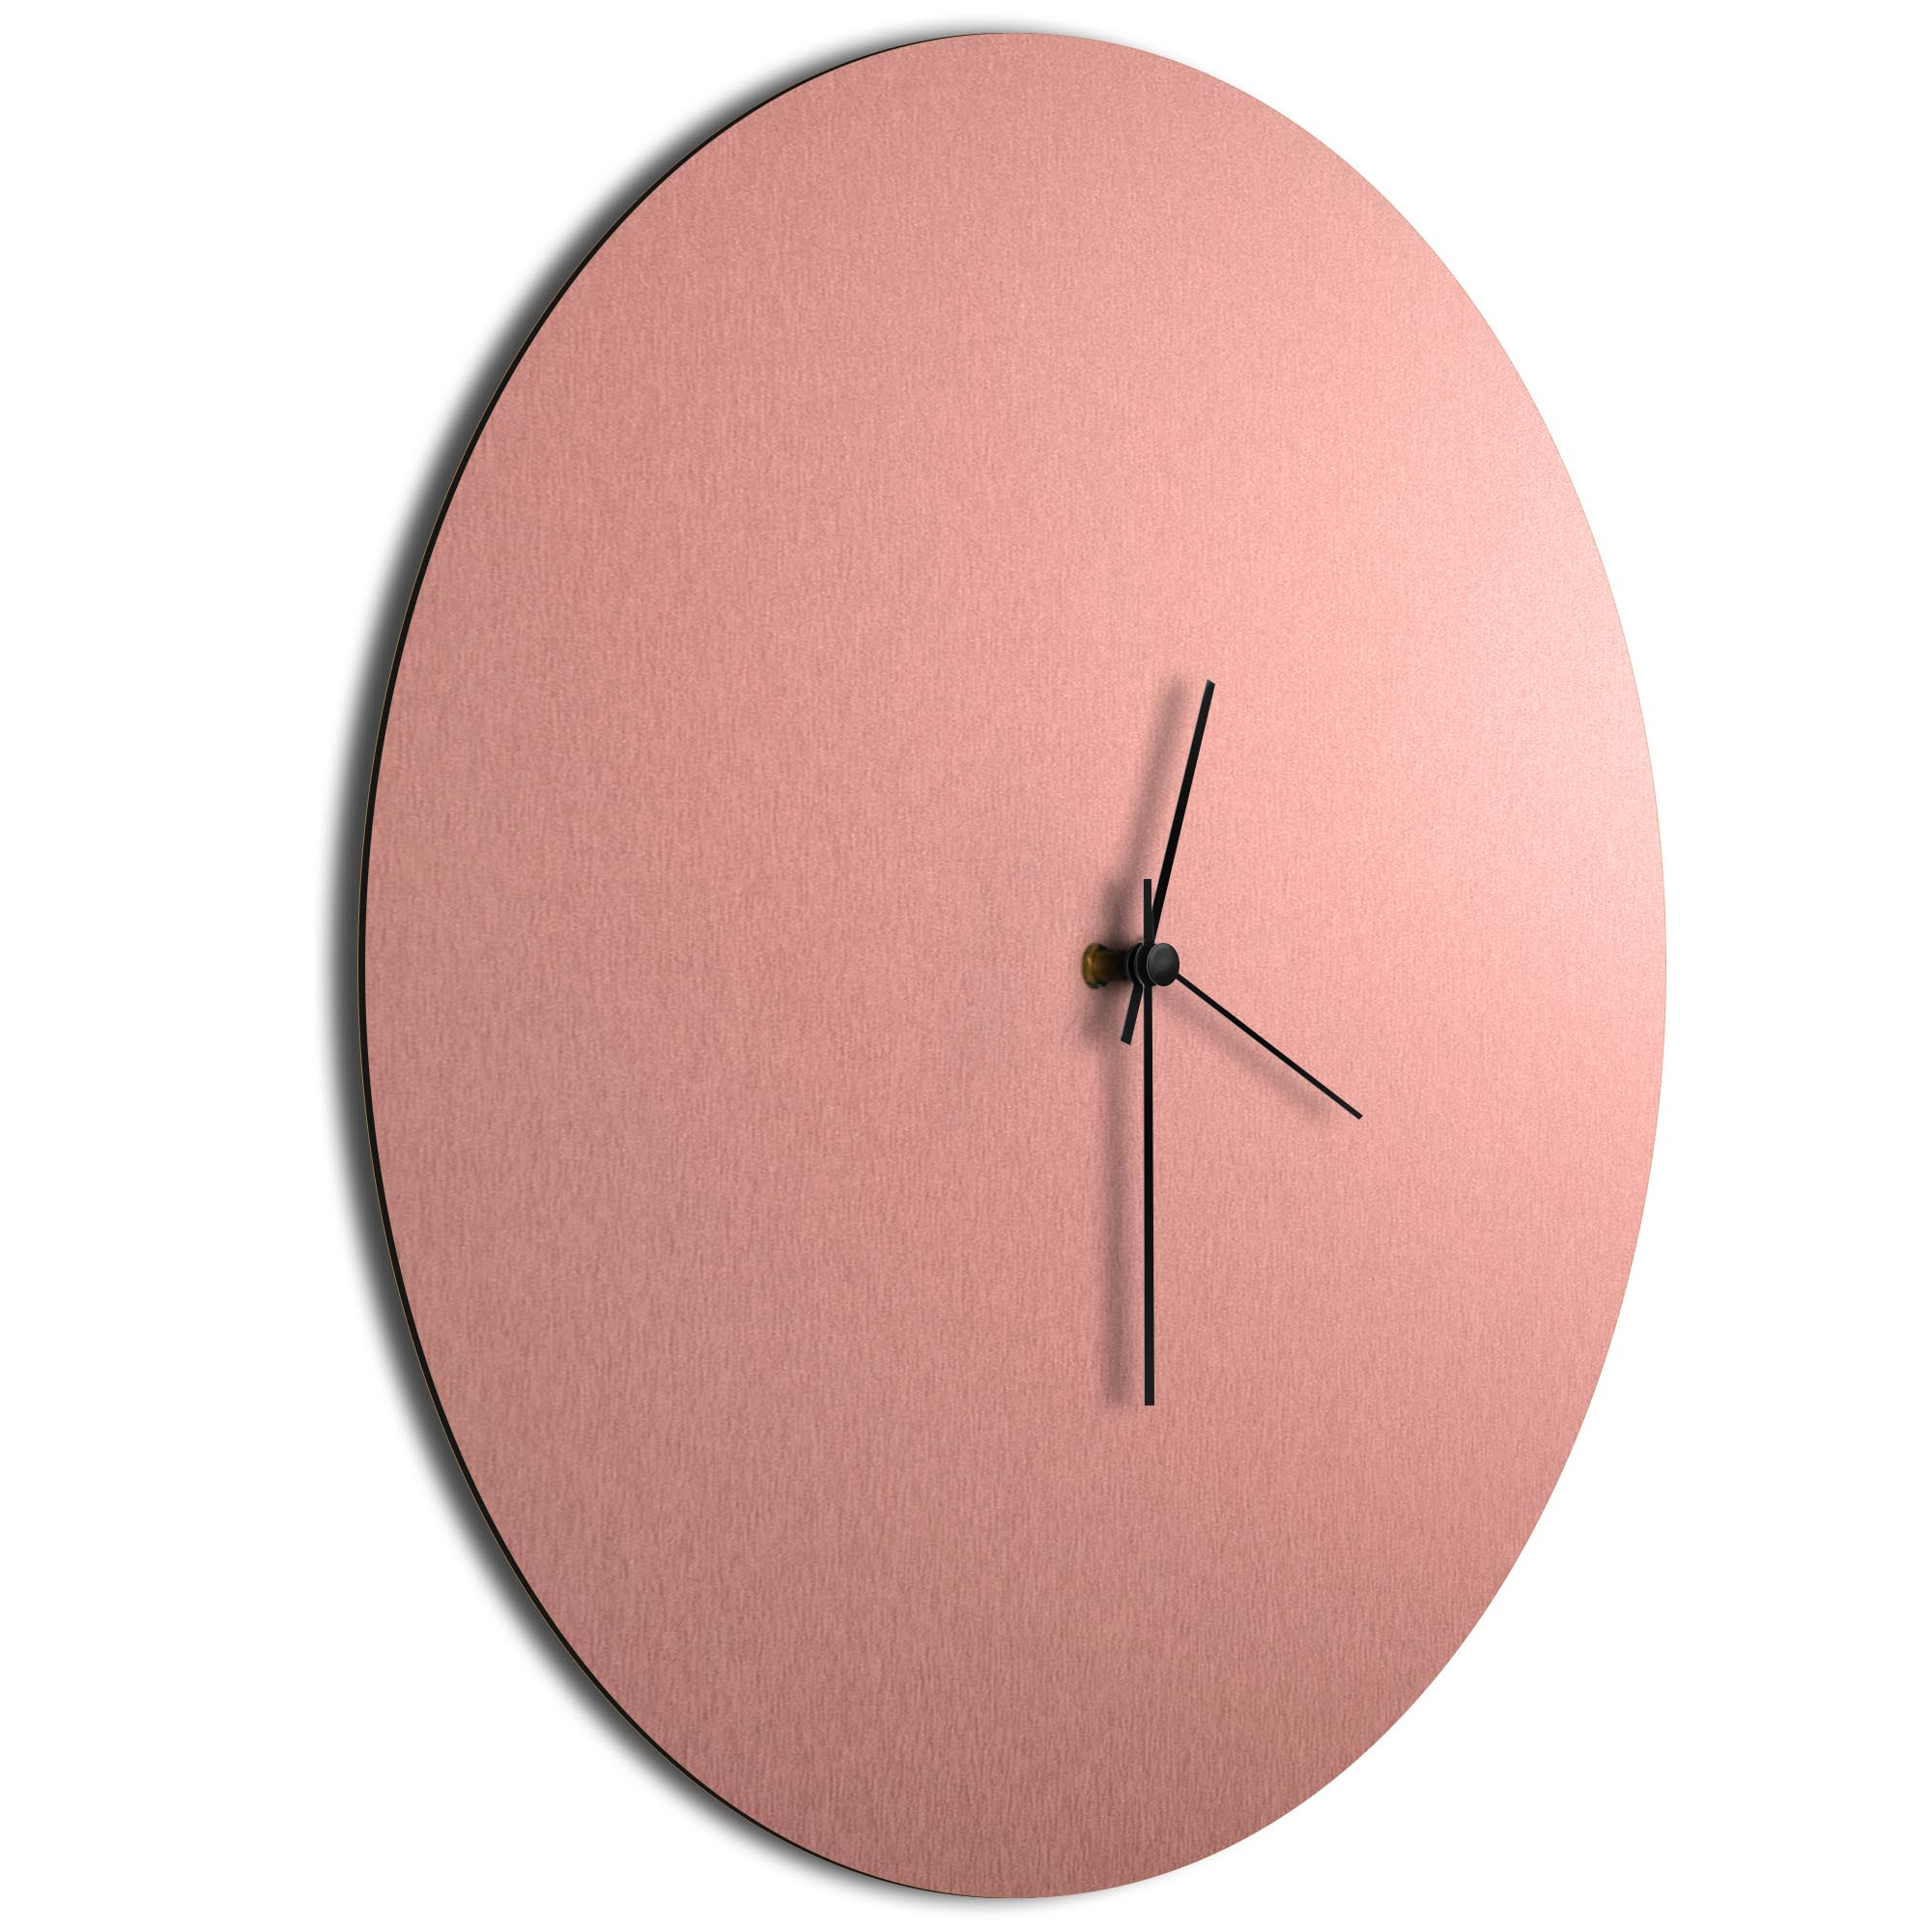 Coppersmith Circle Clock Large Black - Image 2